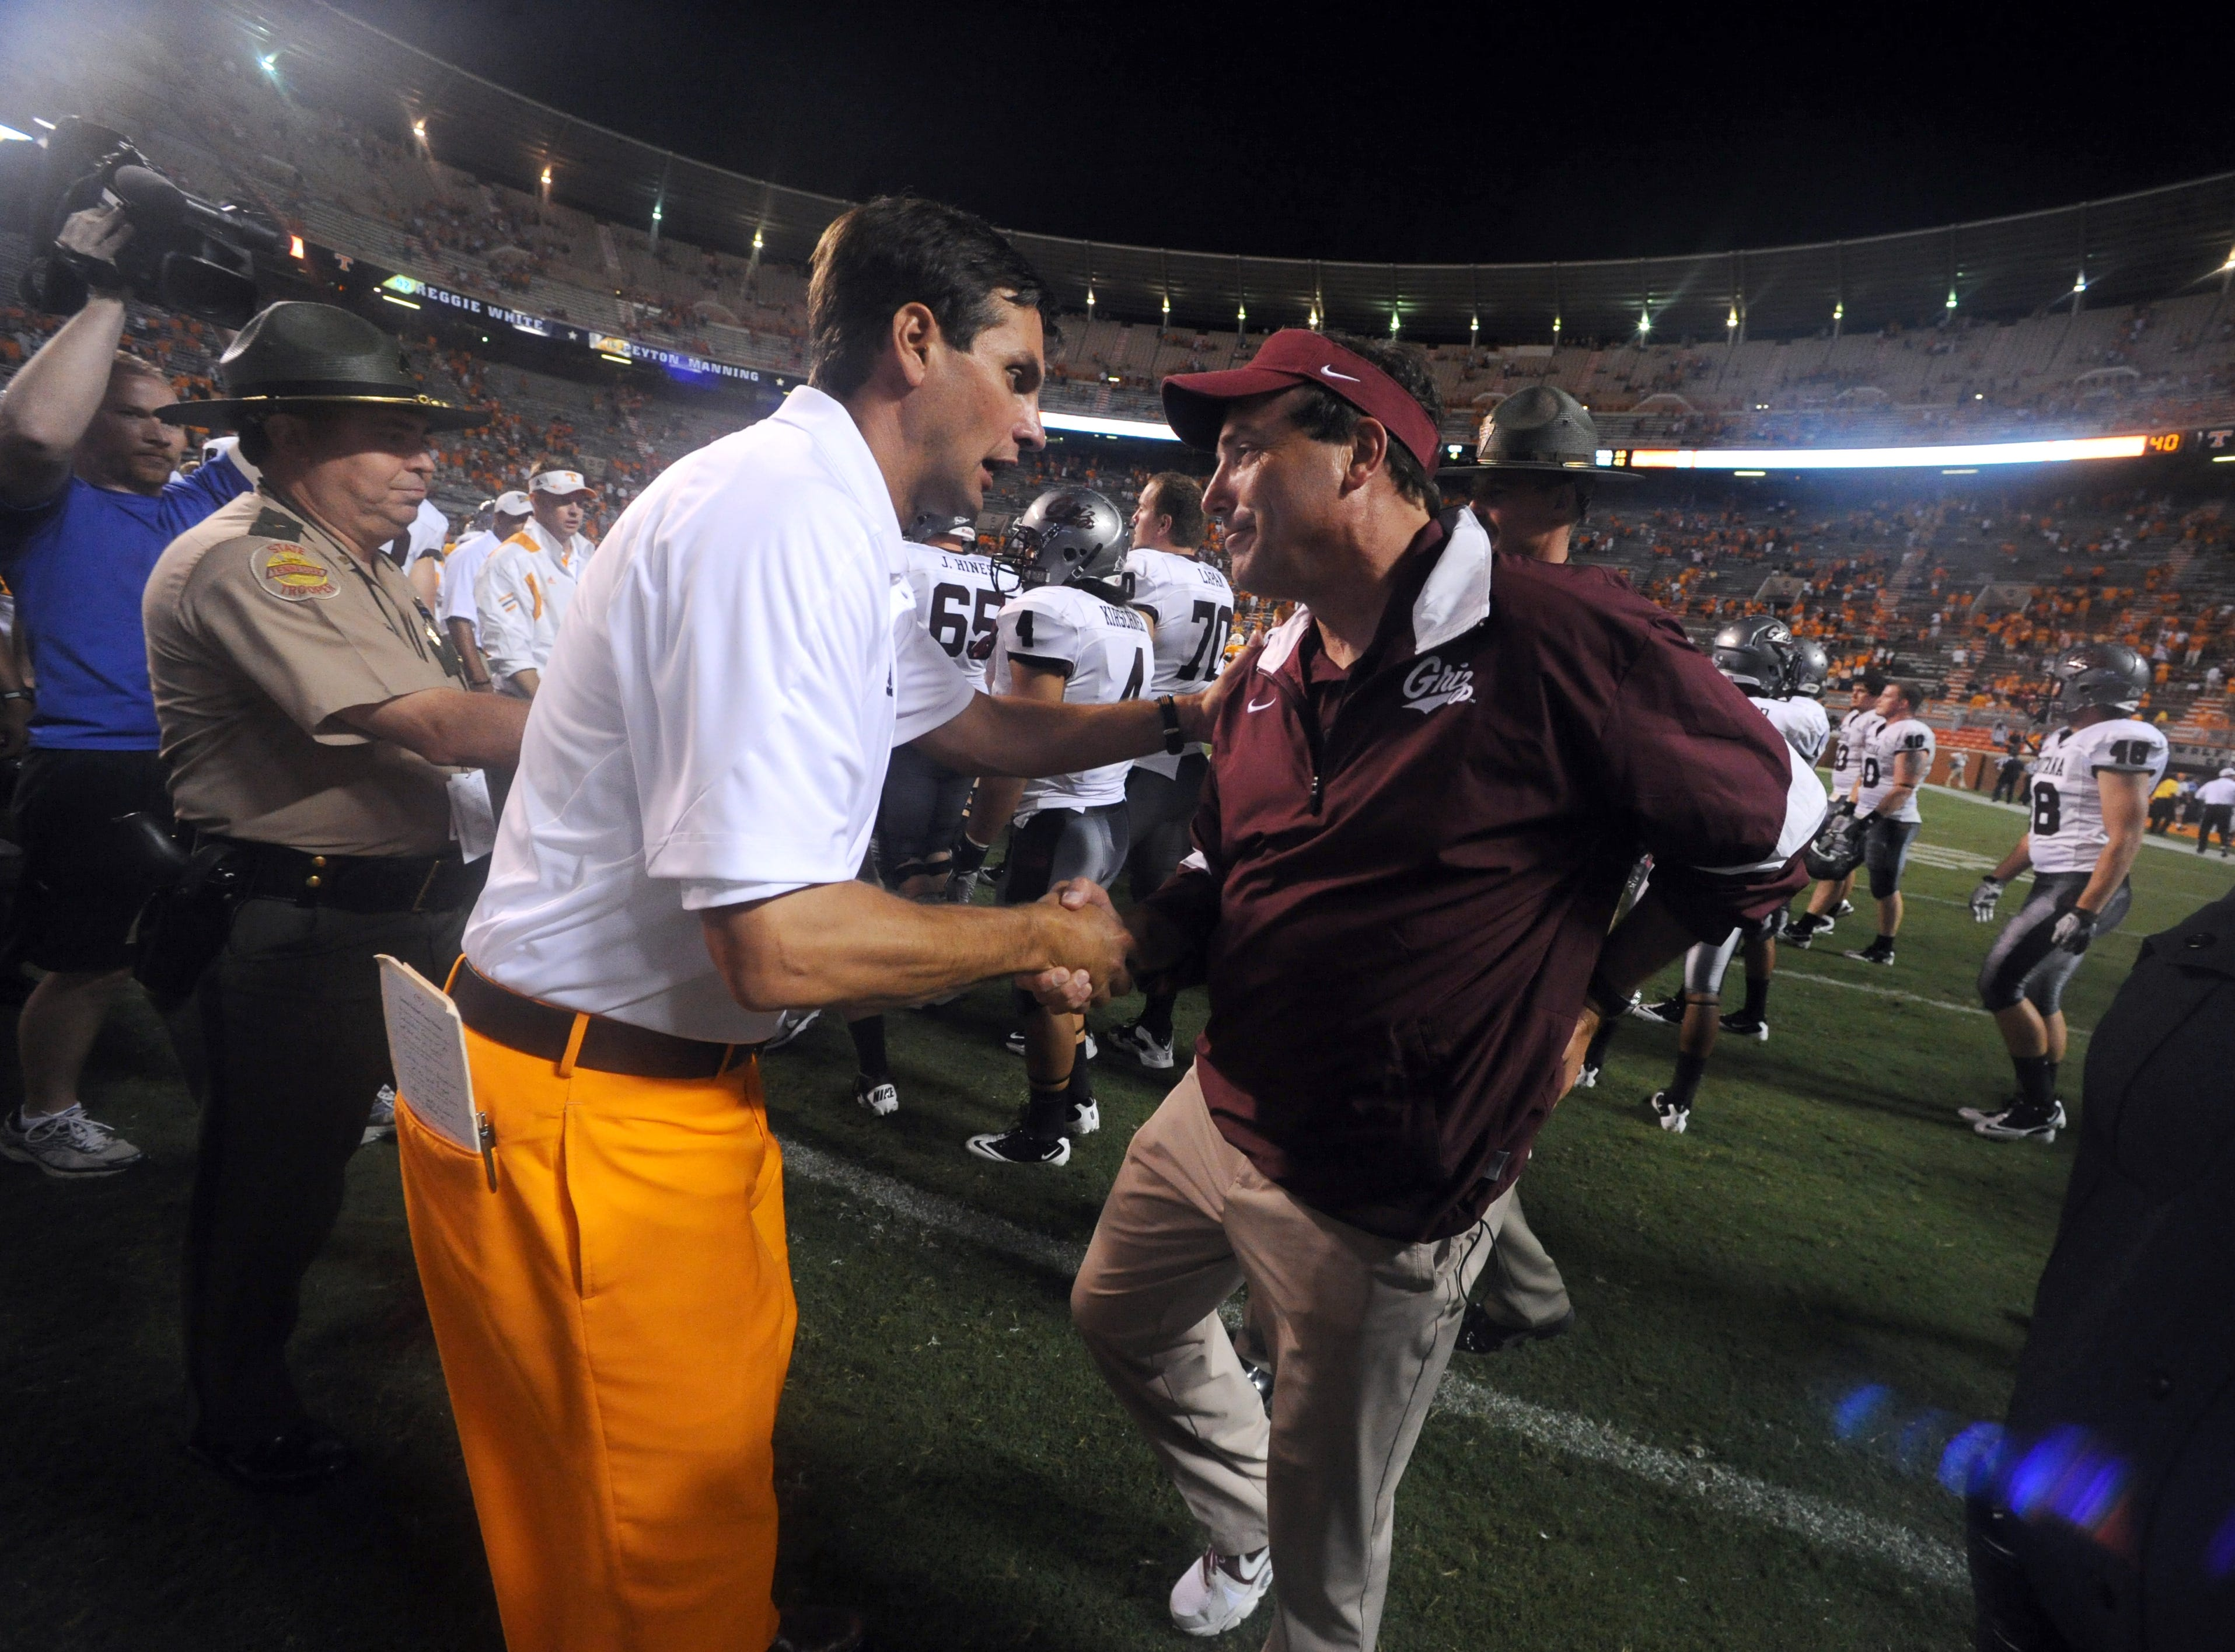 Tennessee head coach Derek Dooley, left, shakes hands with Montana head coach Robin Pflugrad, right, after the Vols defeated the Grizzlies 42-16 at Neyland Stadium Saturday, Sept. 3, 2011.